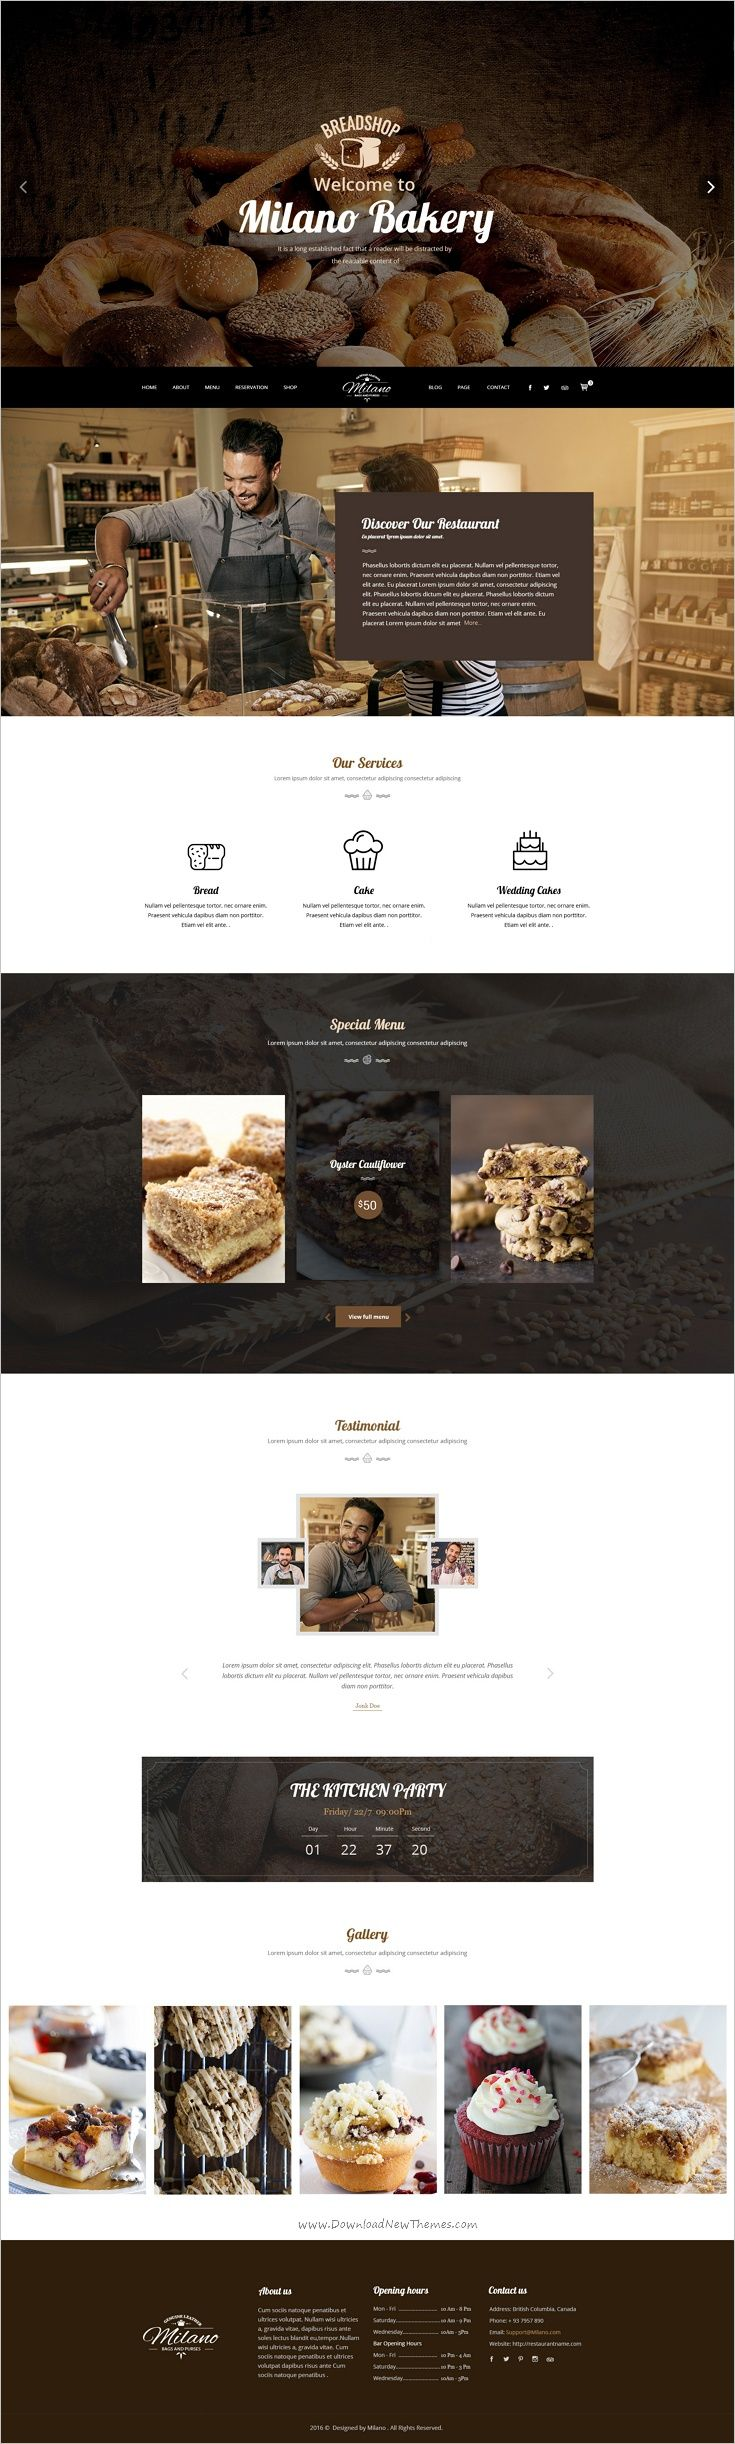 Milano #bakery is a stunning #Photoshop #Template for Bakeries, Cake & Coffee Shops website with 3 unique homepage layouts and 16 organized PSD pages download now➩ https://themeforest.net/item/milano-stunning-bakery-psd-template-for-bakeries-cake-coffee-shops/19108936?ref=Datasata